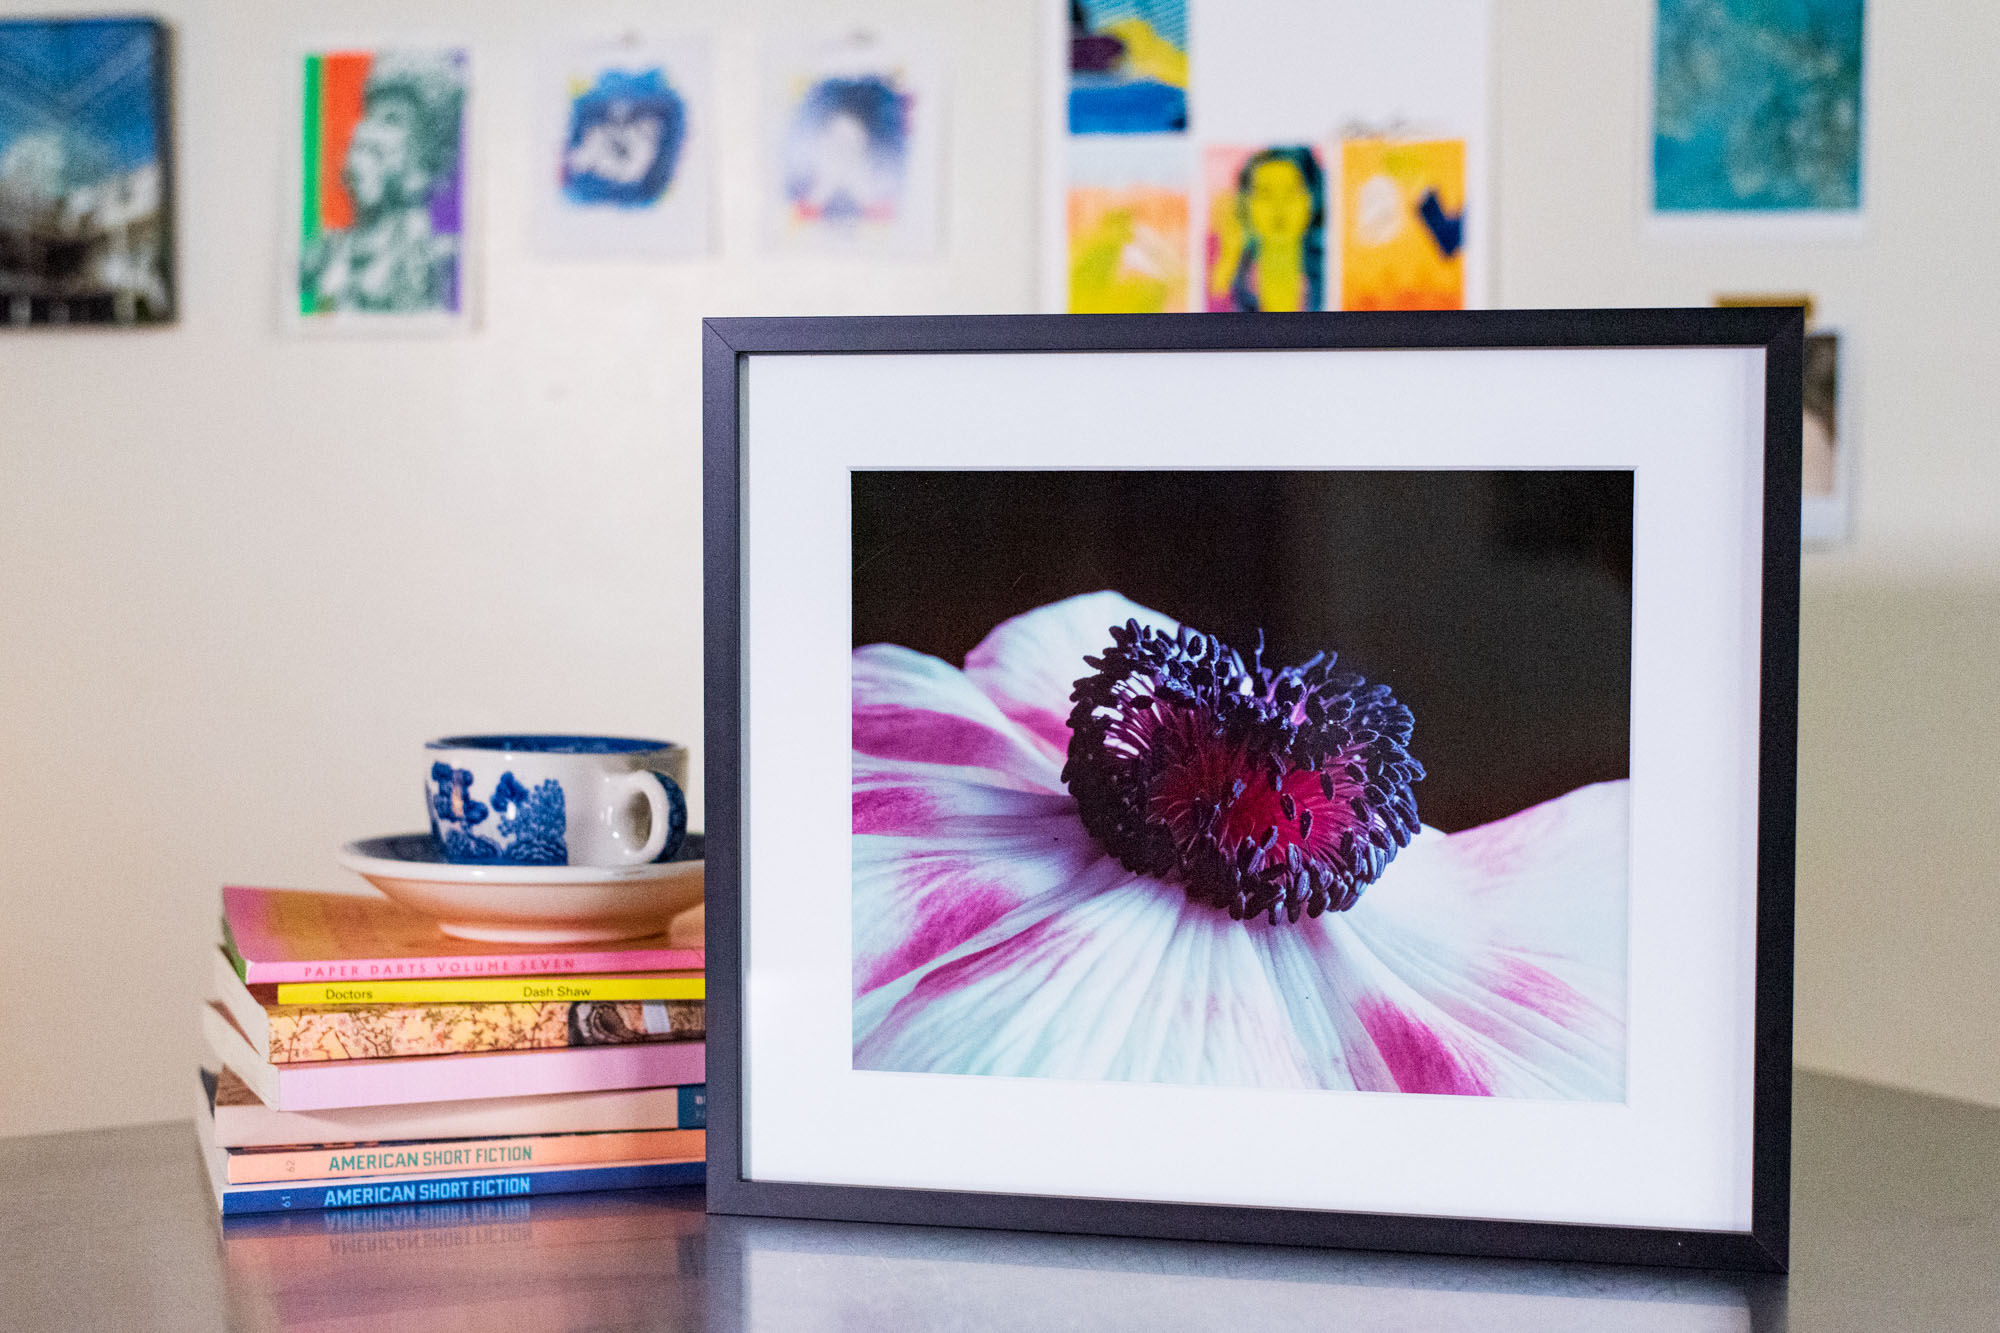 a black framed photograph of a flower posed with some books on a metal table